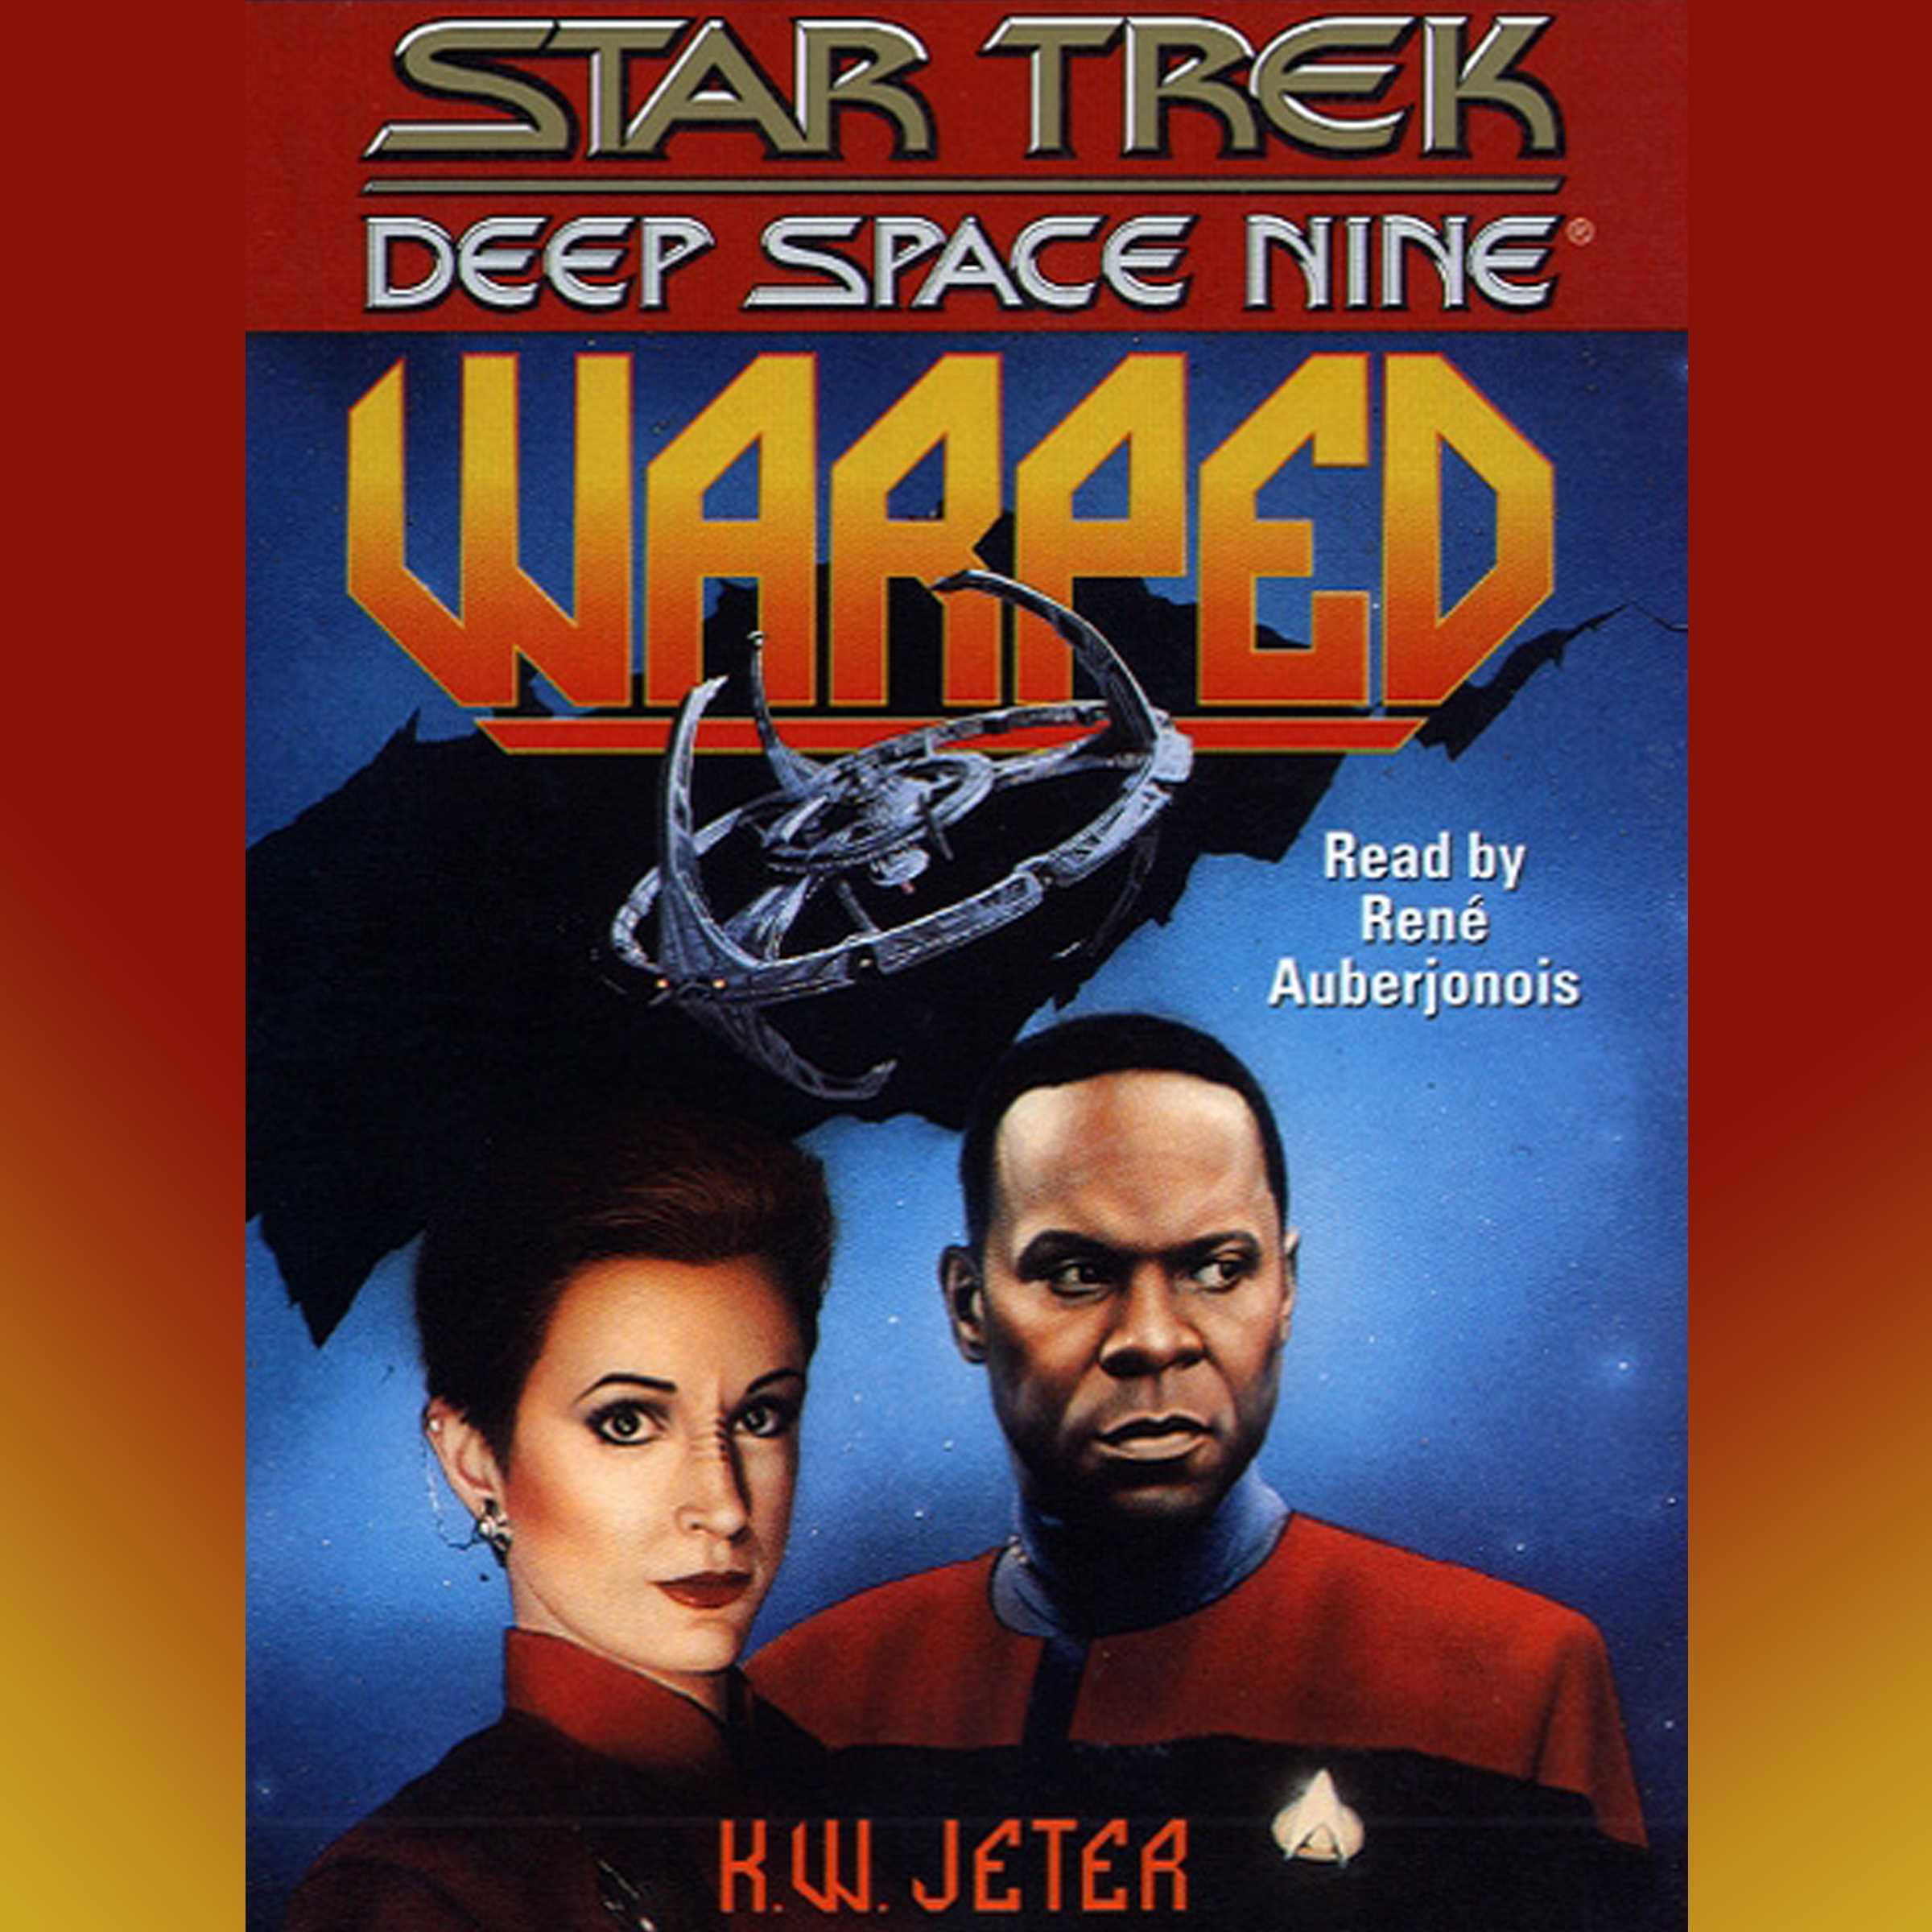 Star trek deep space nine warped 9780743546218 hr